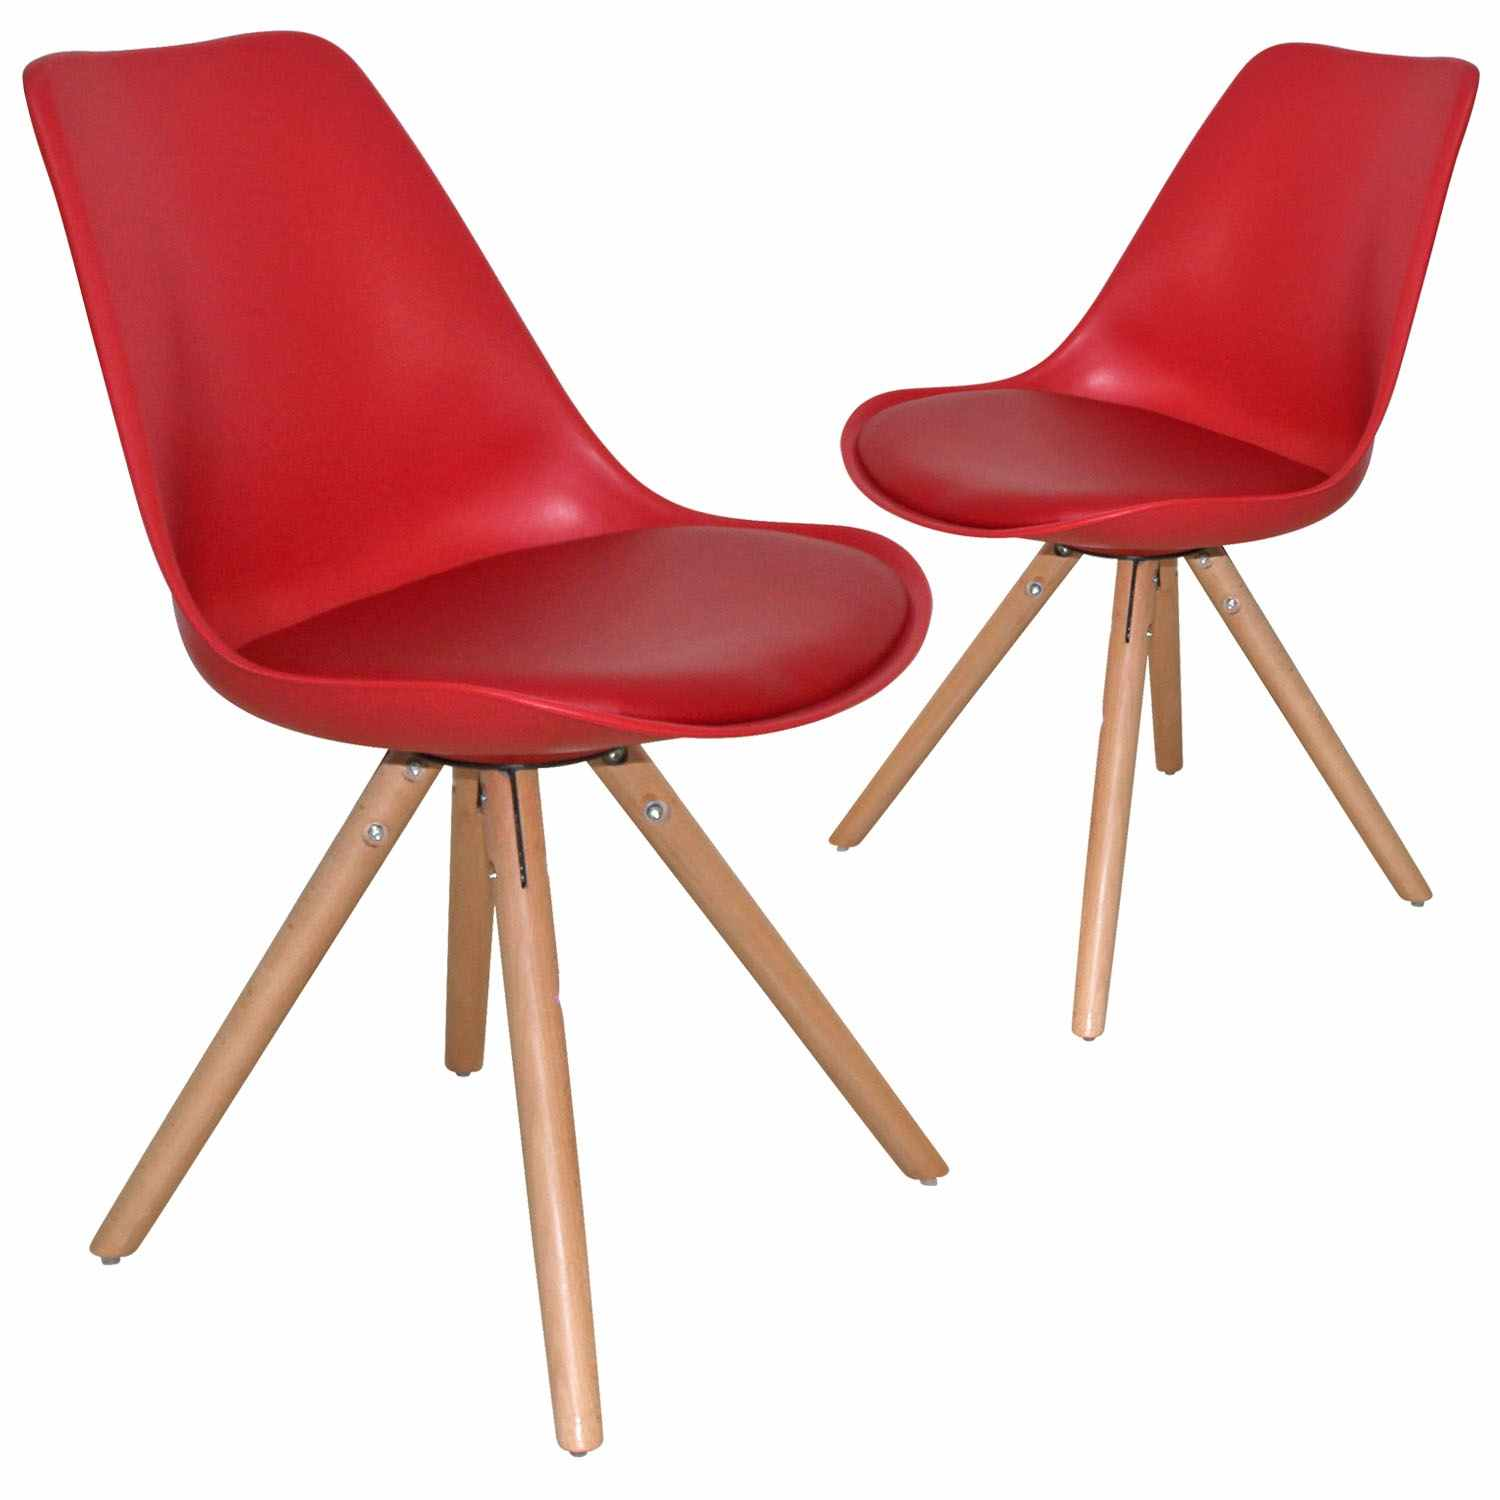 Deco in paris 6 lot de 2 chaises design rouge velta for Chaise rouge